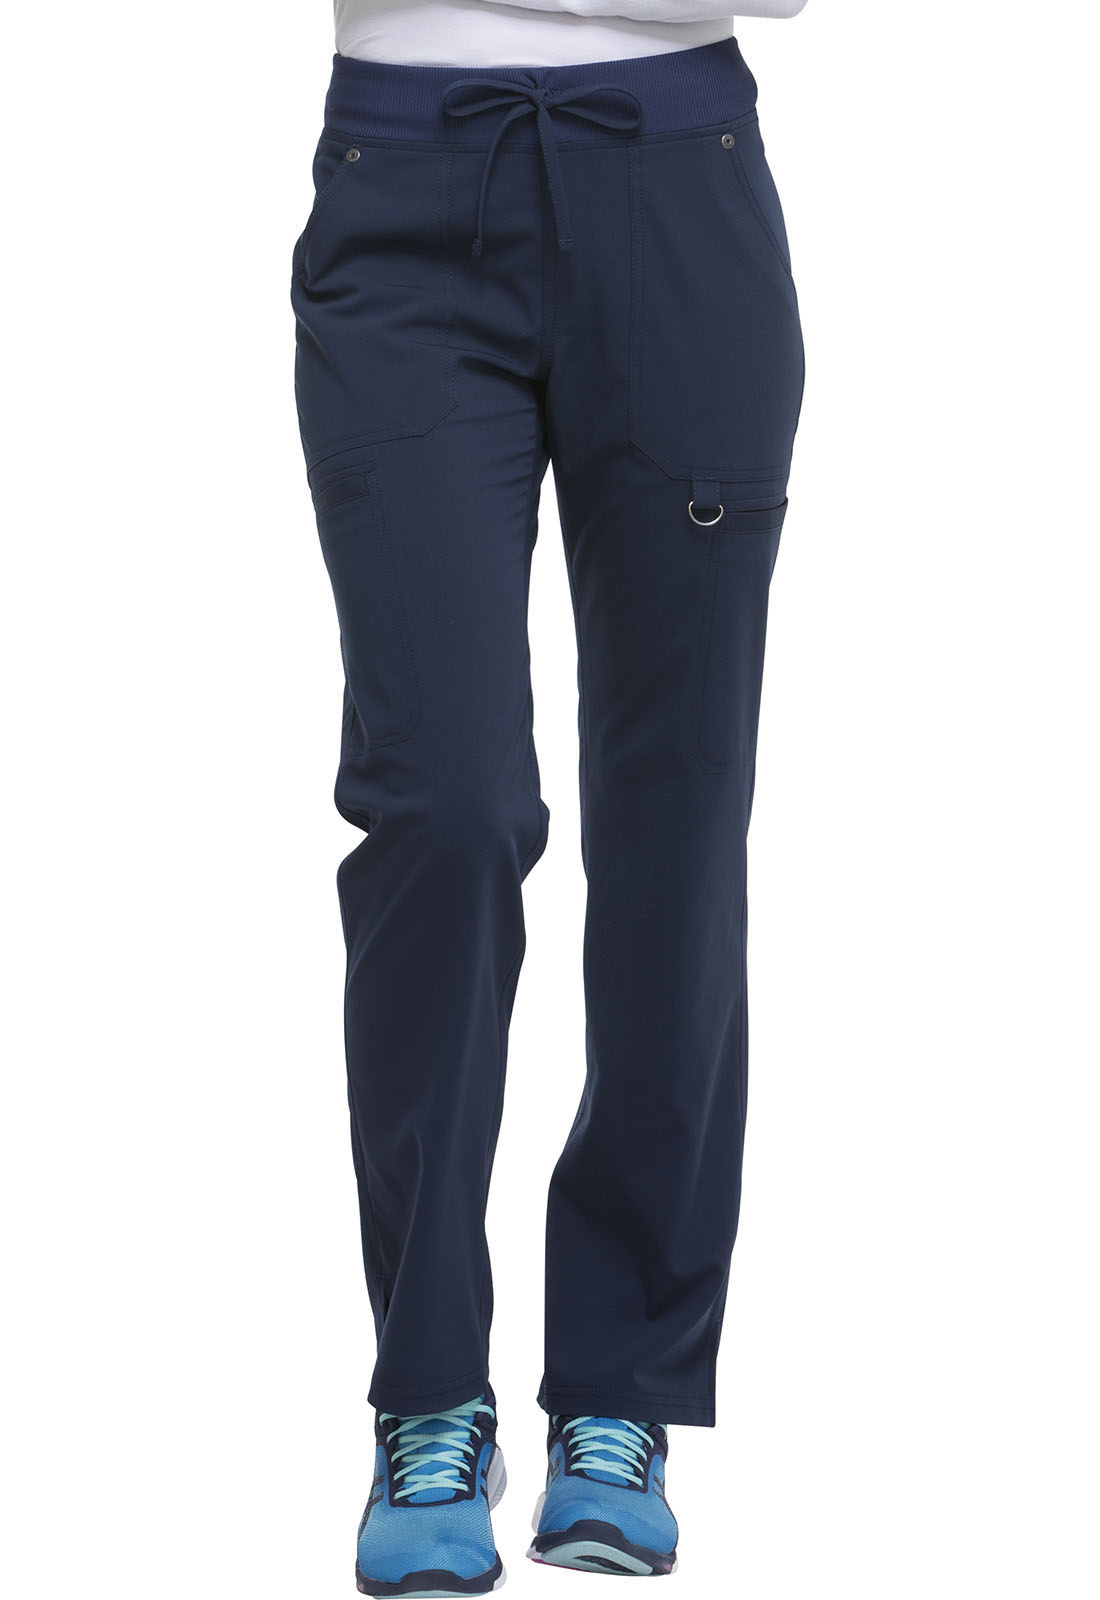 6e45865522e Dickies Xtreme Stretch Mid Rise Rib Knit Waistband Pant in D-Navy ...